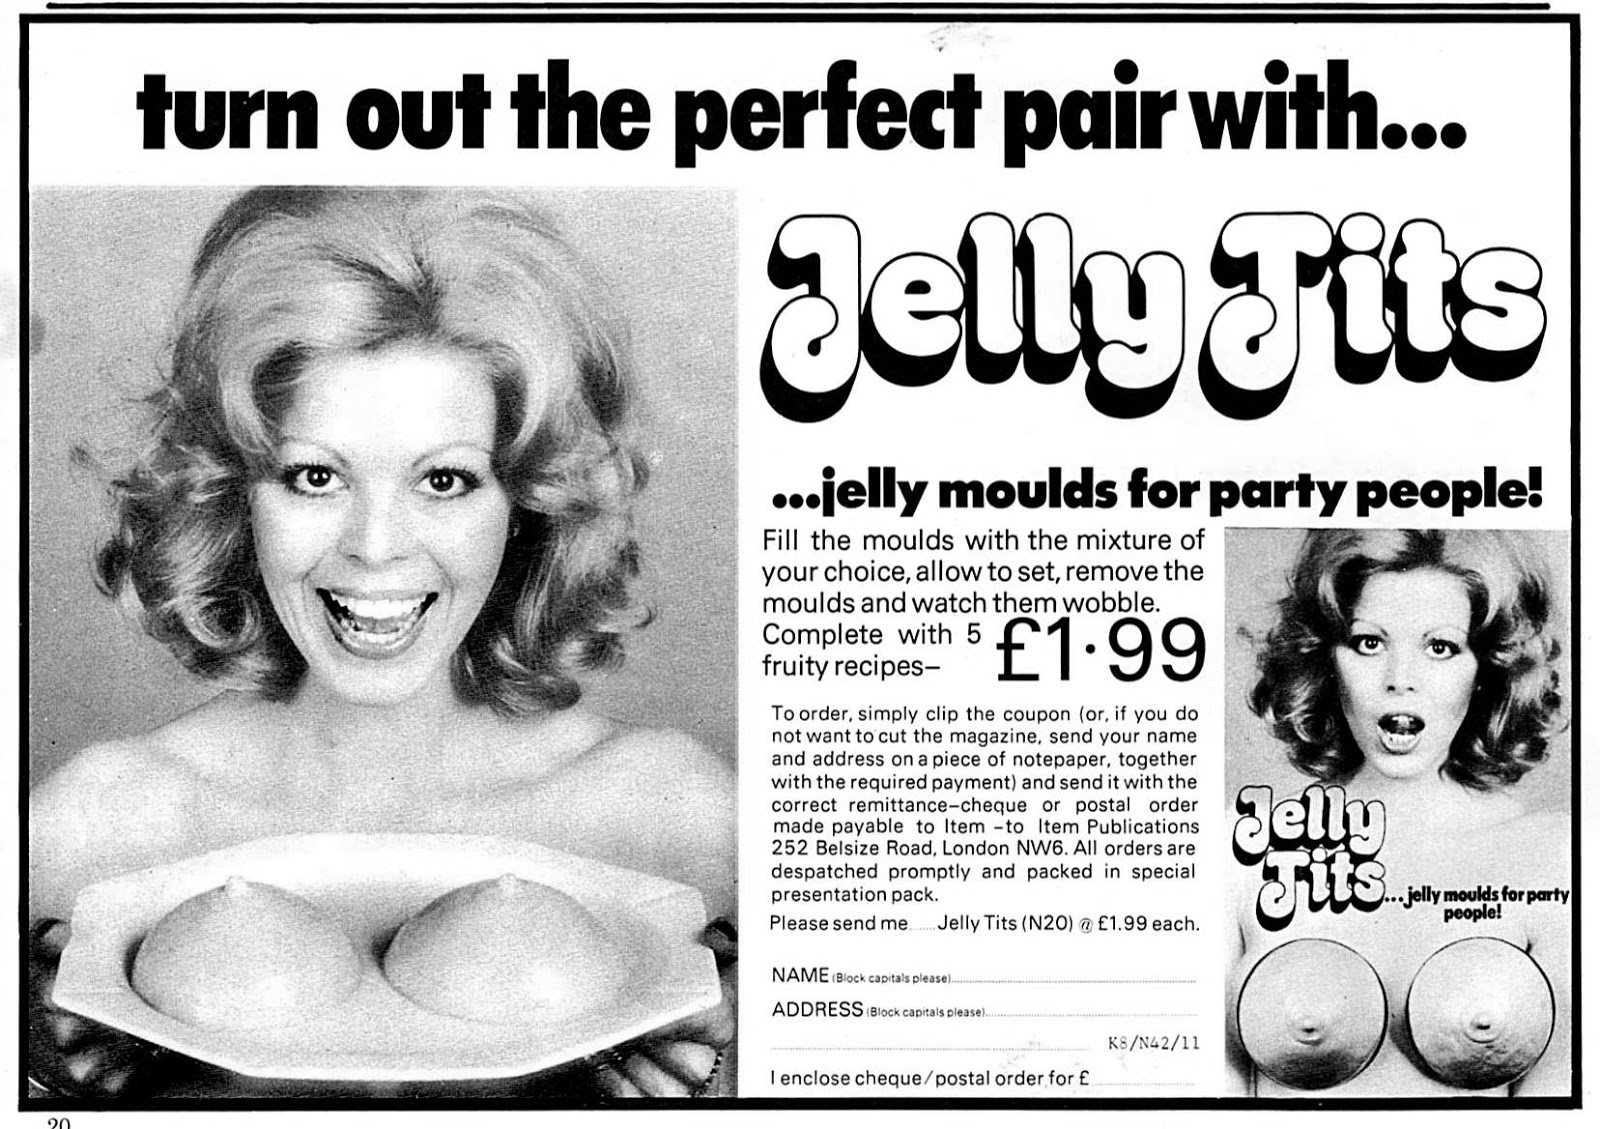 Jelly tits